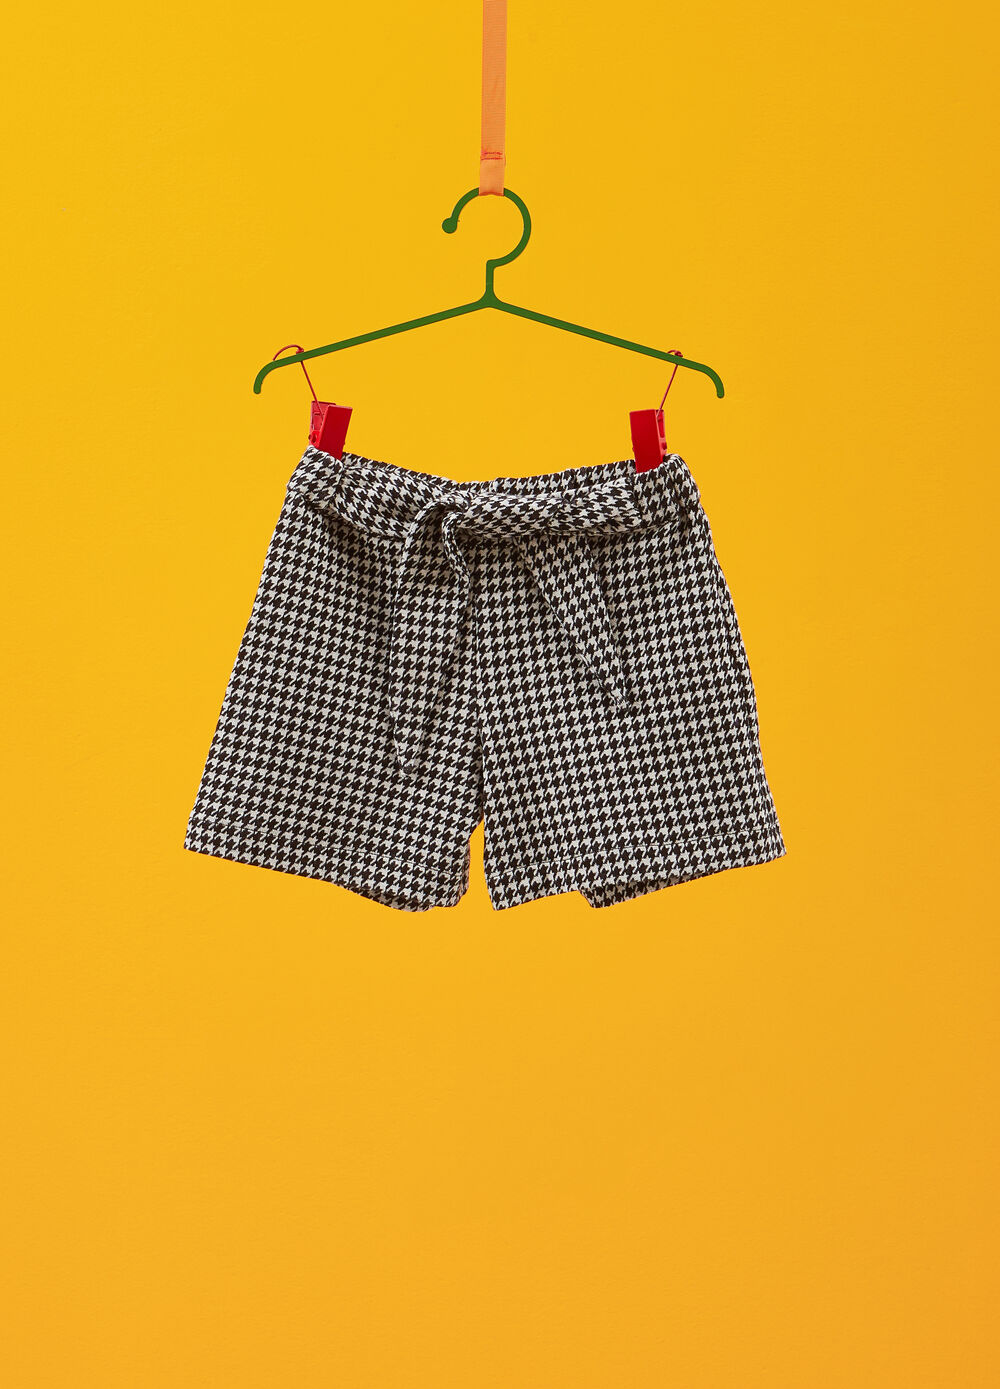 Shorts with hounds' tooth patterned tie